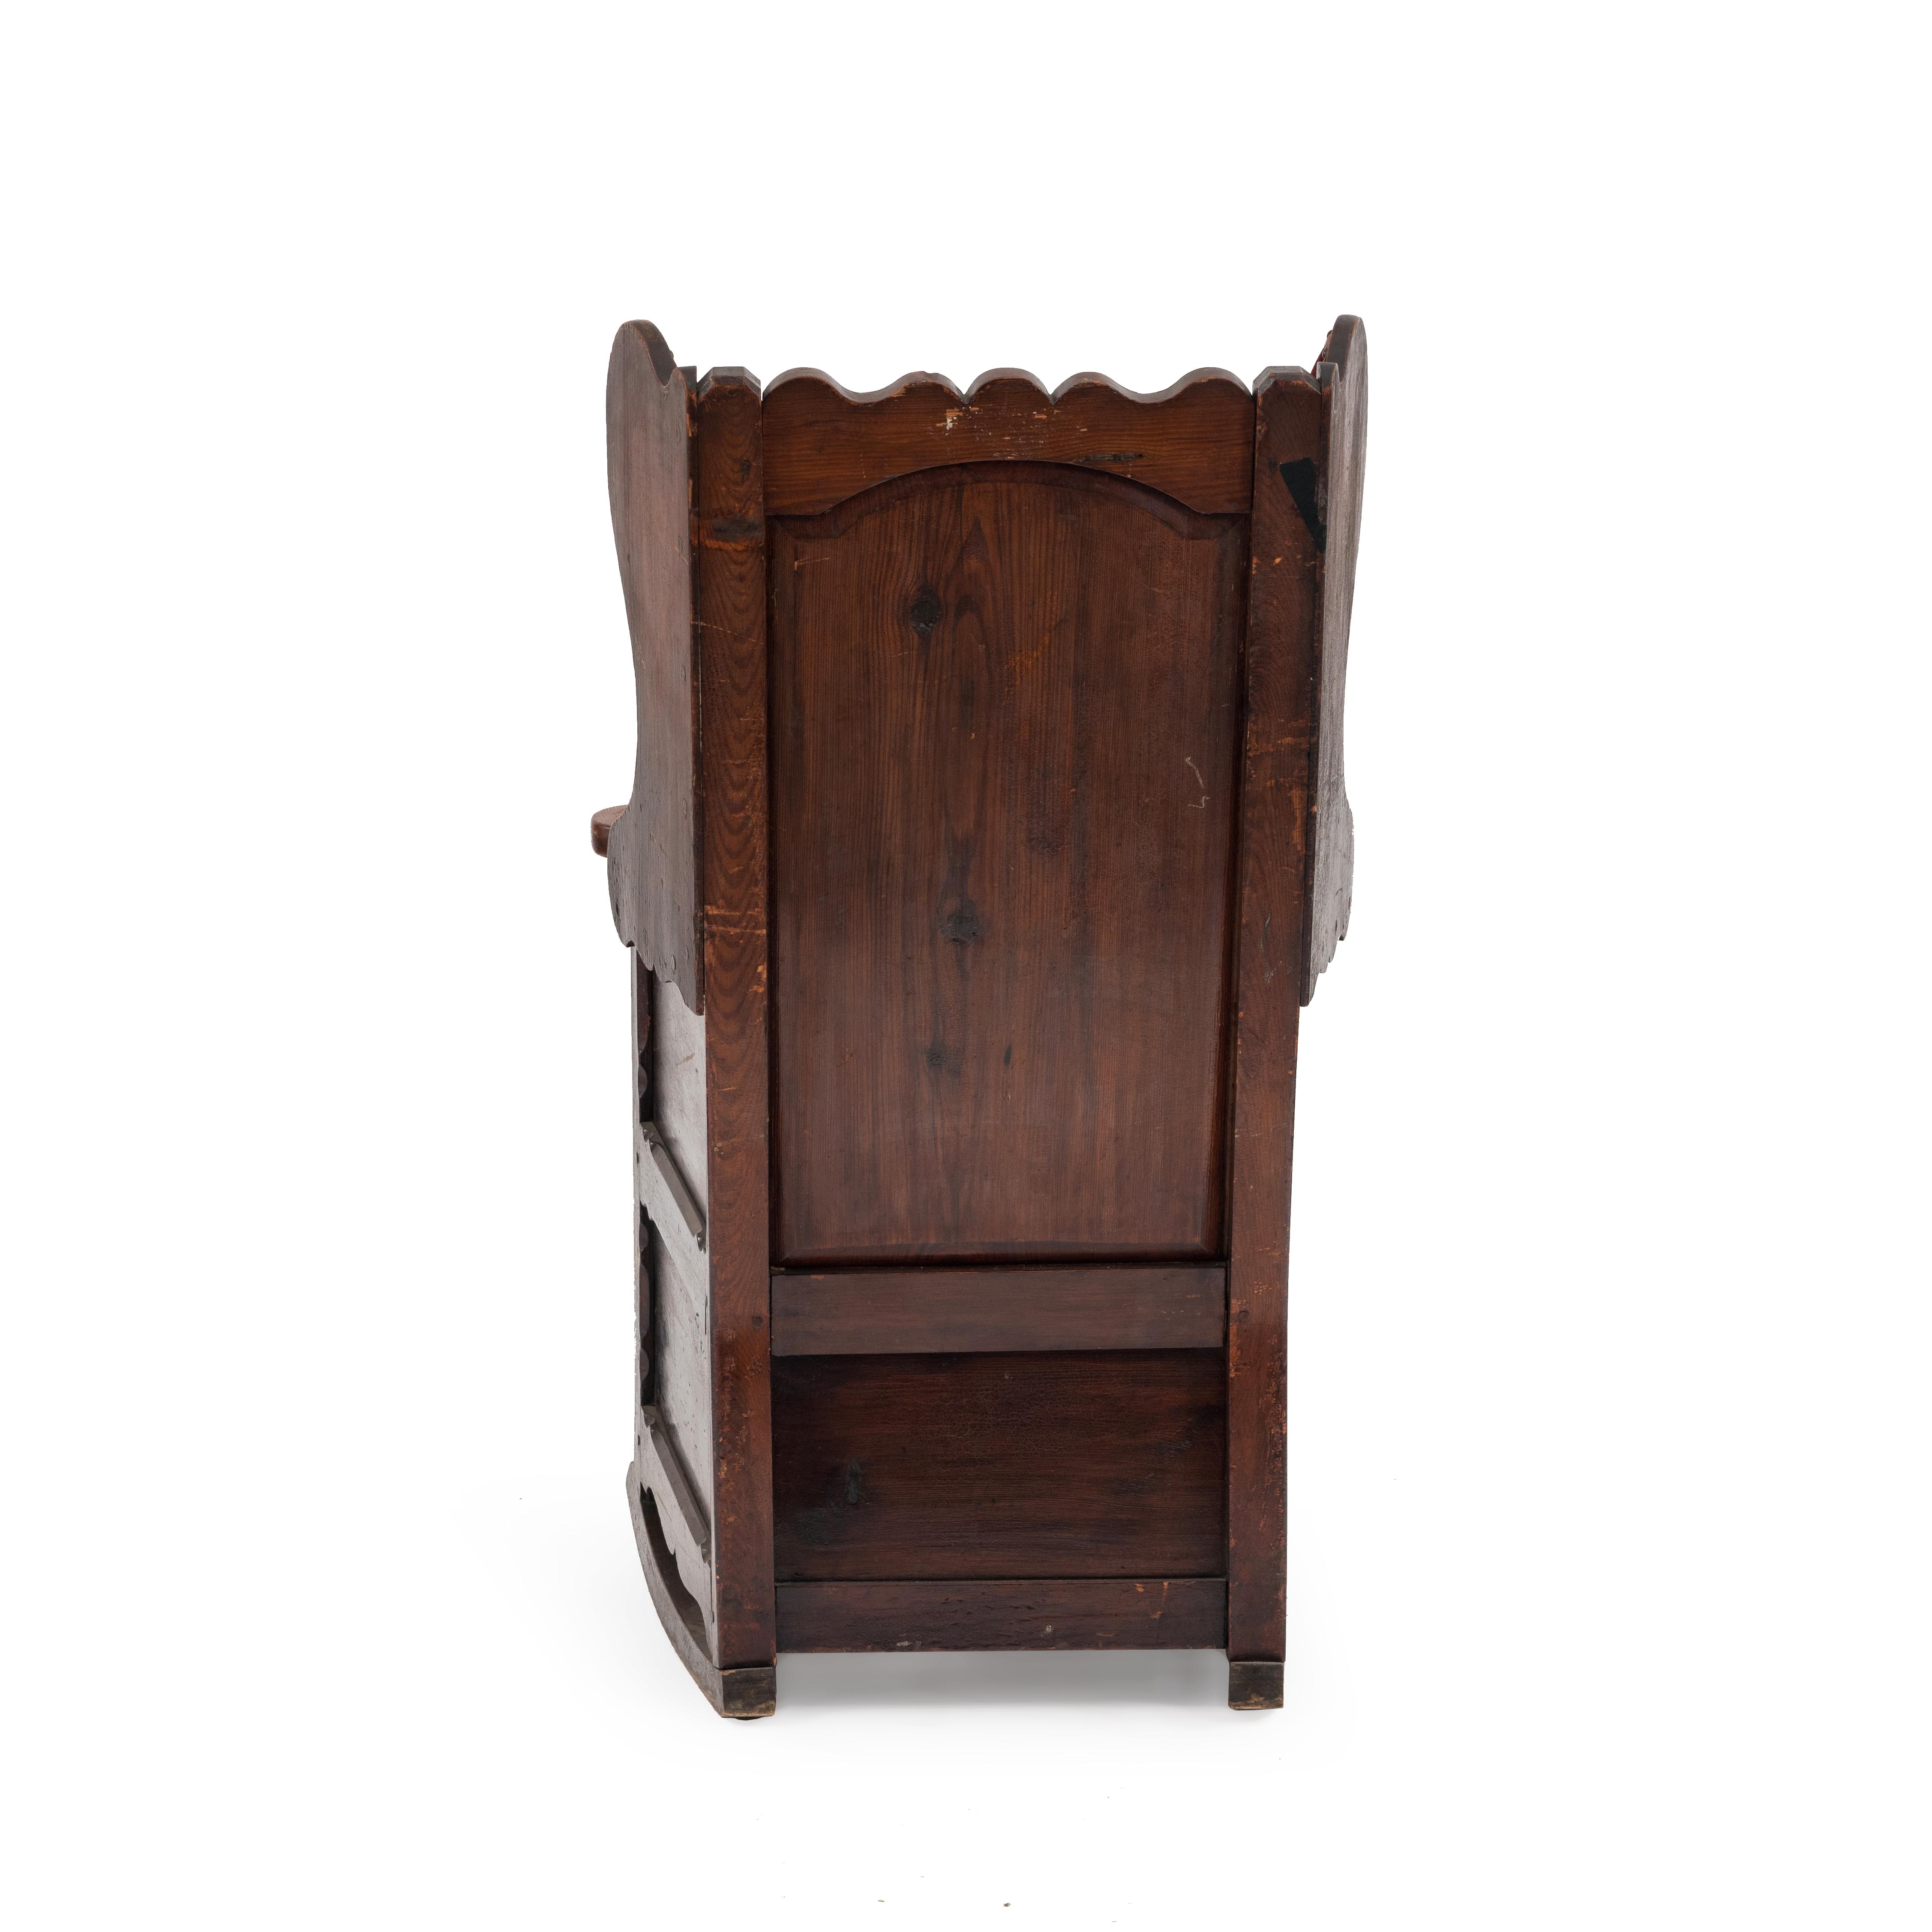 Terrific English Country Winged Pine Rocking Chair Newel Gamerscity Chair Design For Home Gamerscityorg